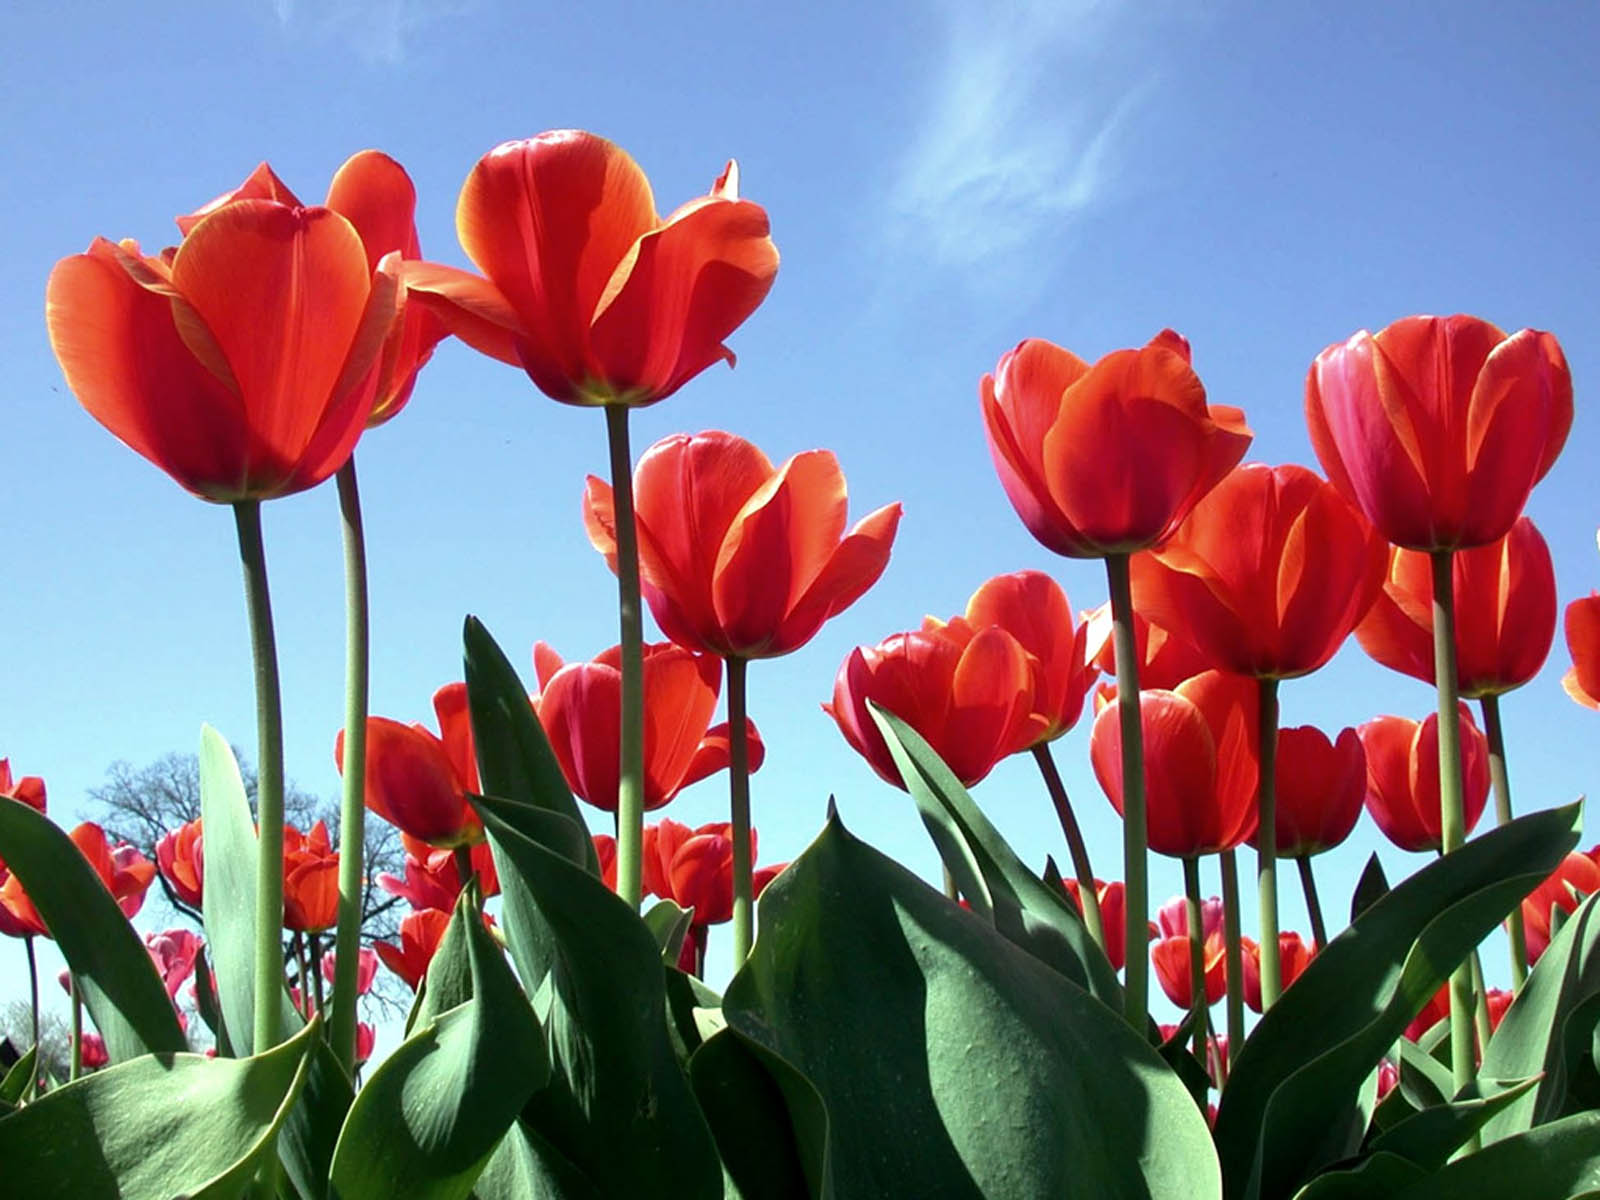 Wallpaper: Red Tulips Wallpapers